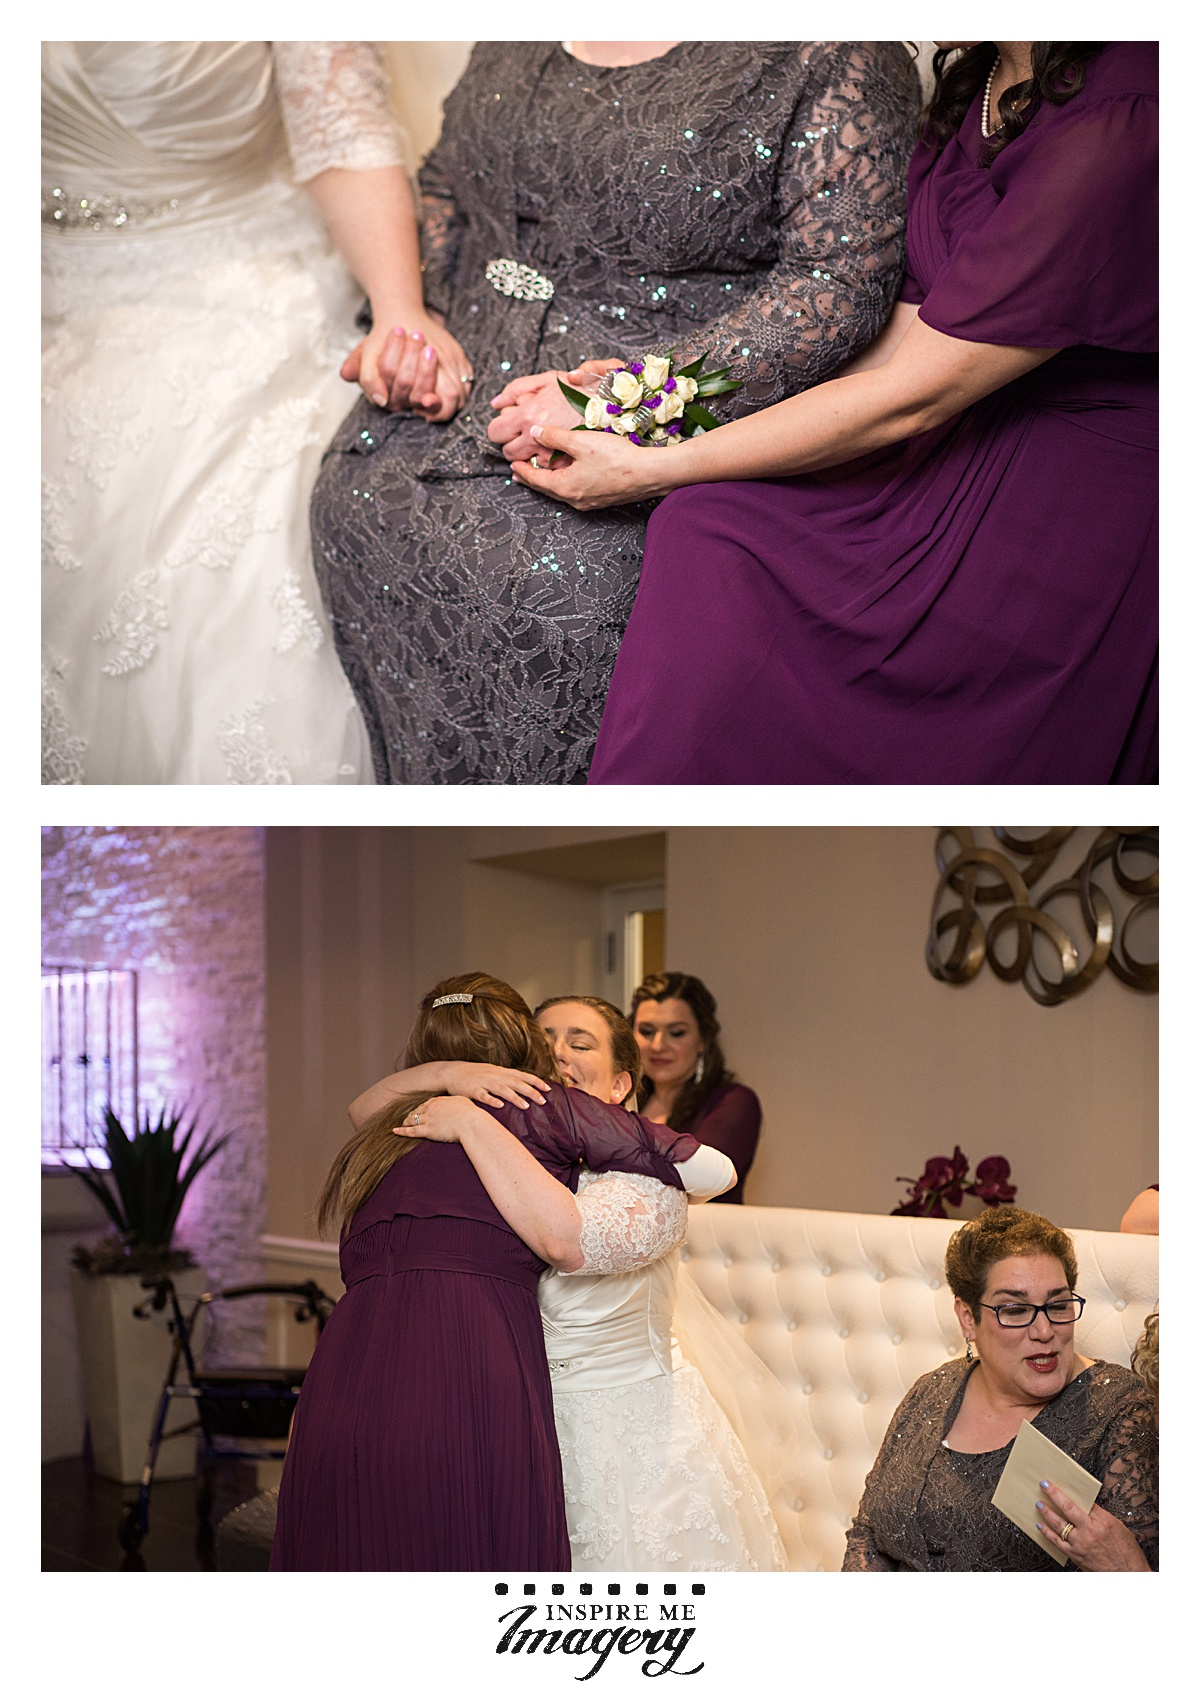 Like I said, an emotional day for sure as the bride and her sister hold hands with their mother, and the bride embraces her closest friends during the Hakhnassat Kallah (Attending the Bride).